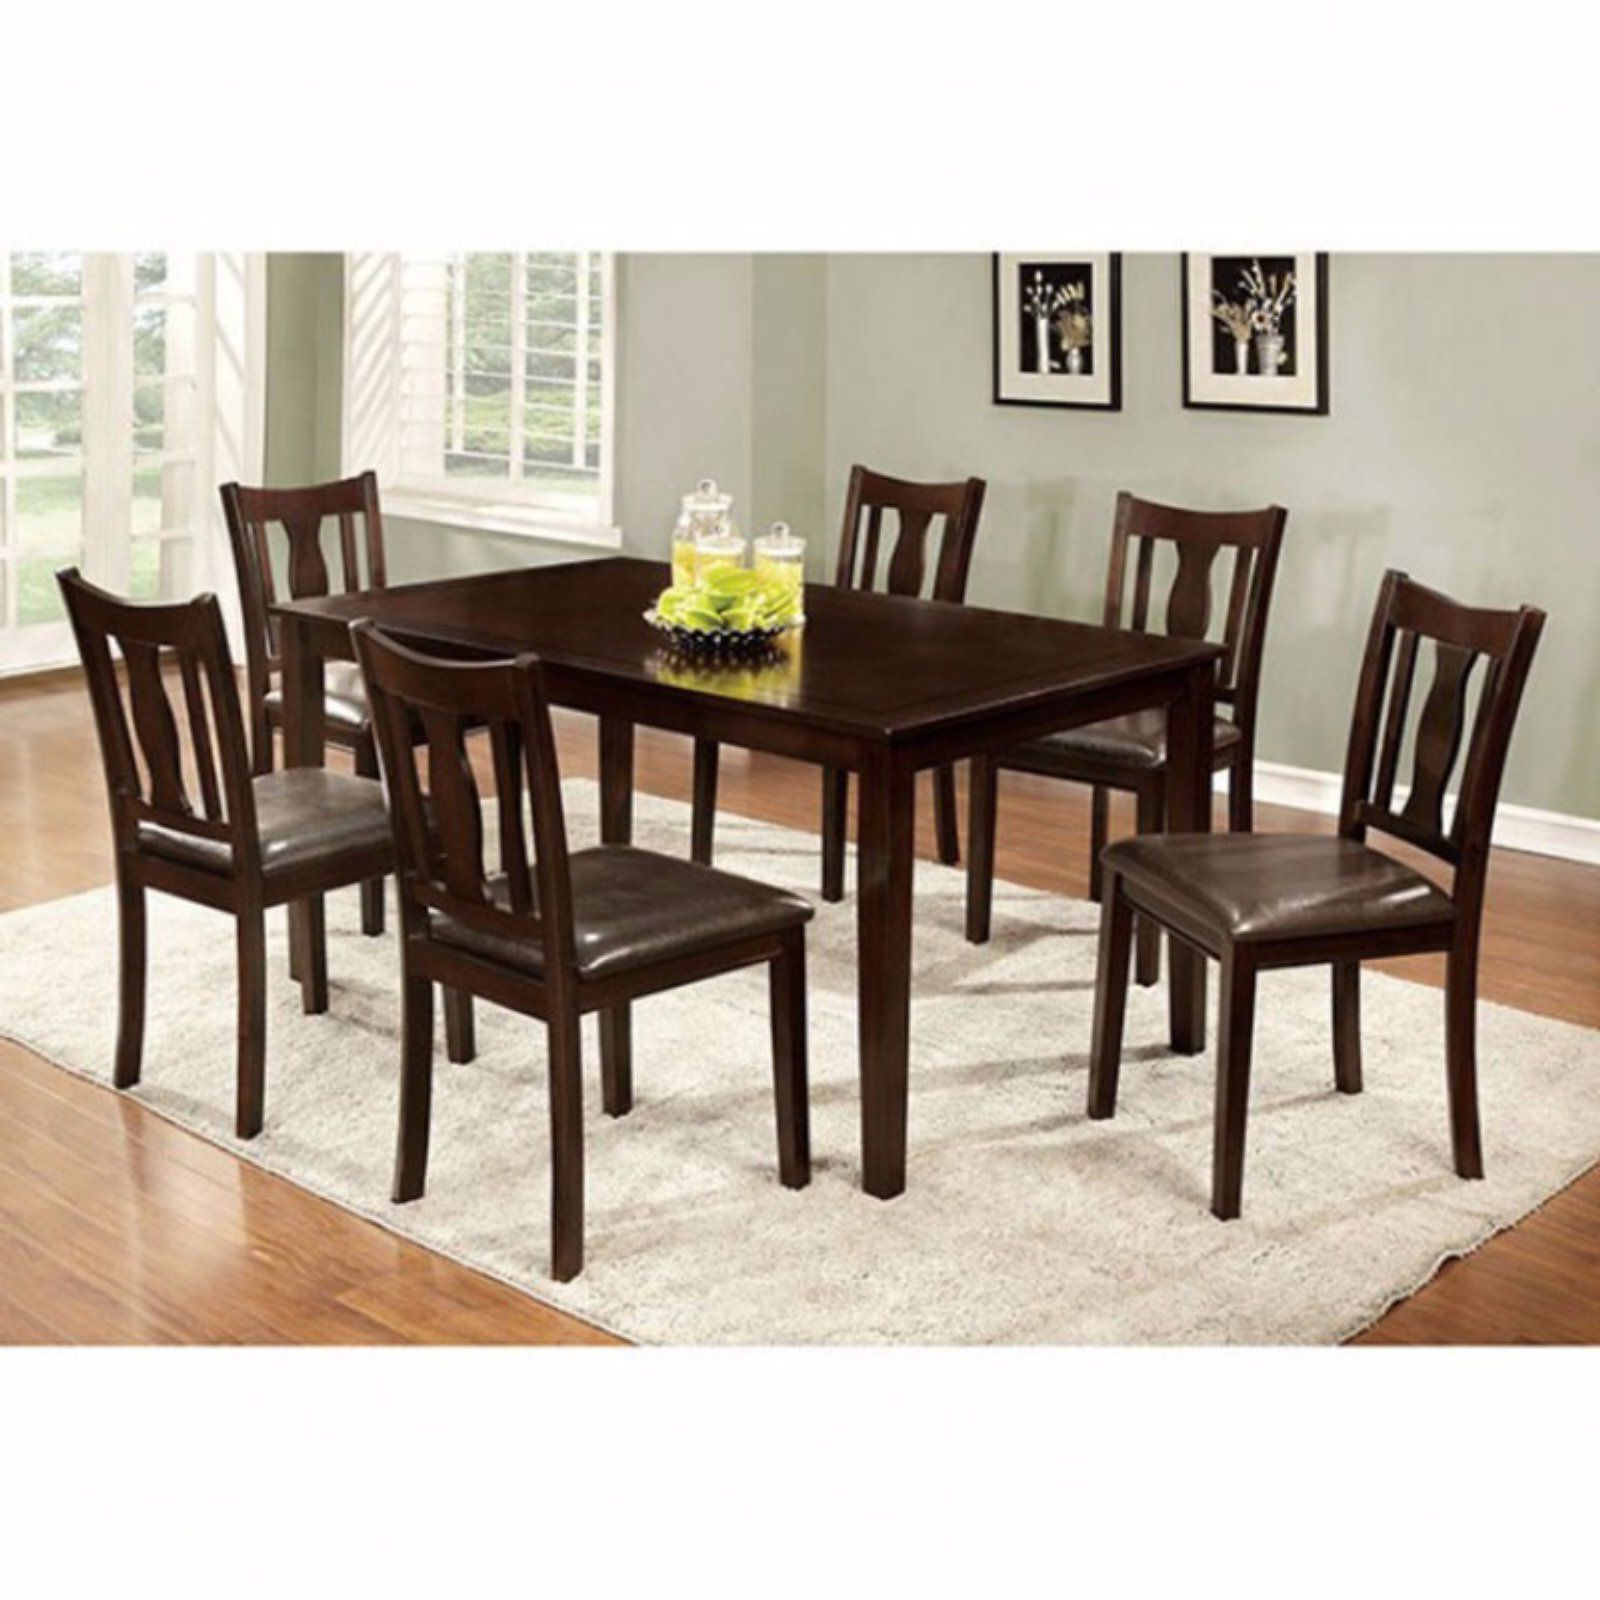 Atwood Transitional Rectangular Dining Tables Throughout Well Liked Benzara 7 Piece Rectangular Faux Leather Dining Table Set In (View 9 of 30)